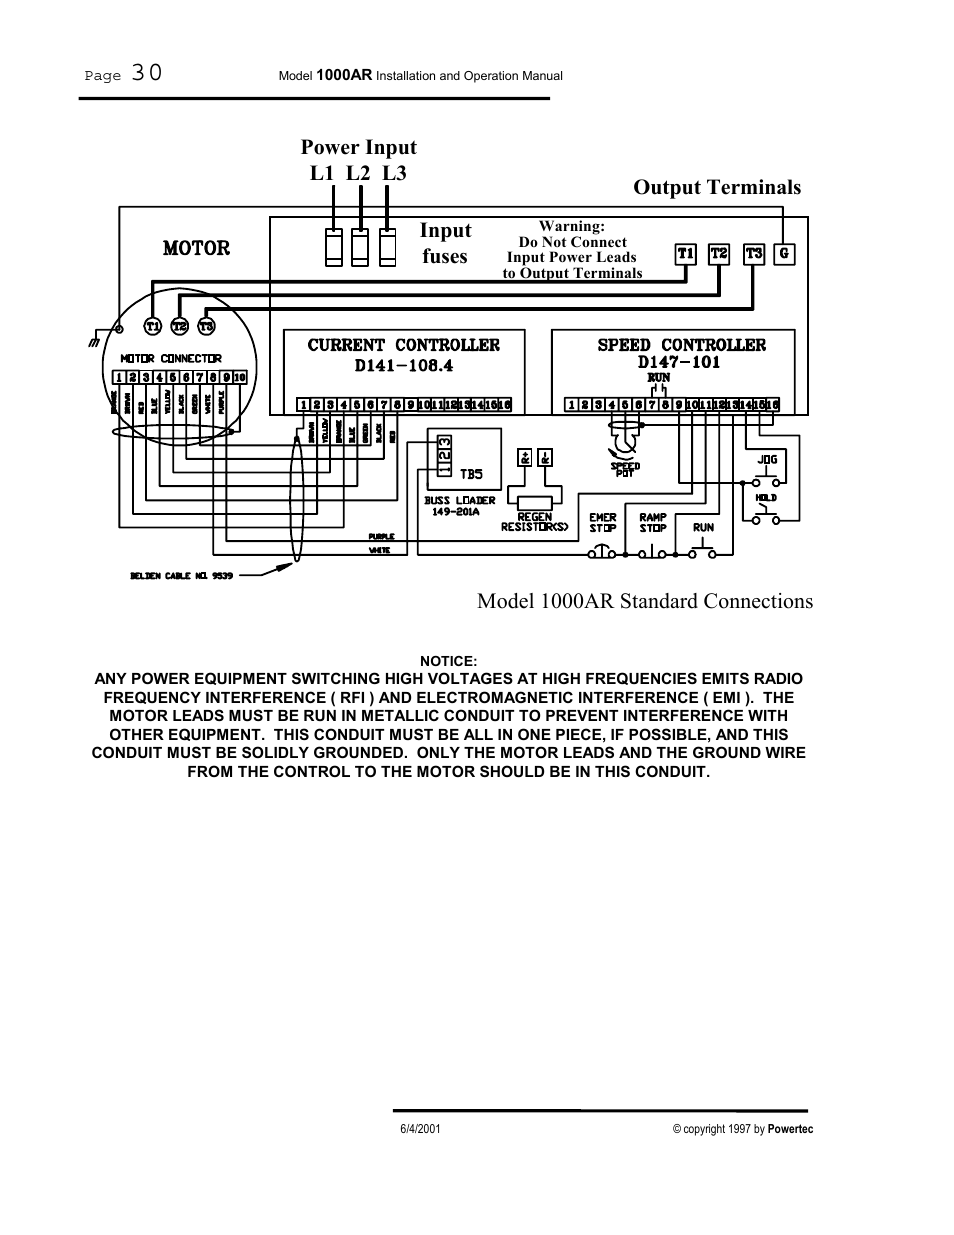 medium resolution of output terminals power input l1 l2 l3 input fuses model 1000ar standard connections